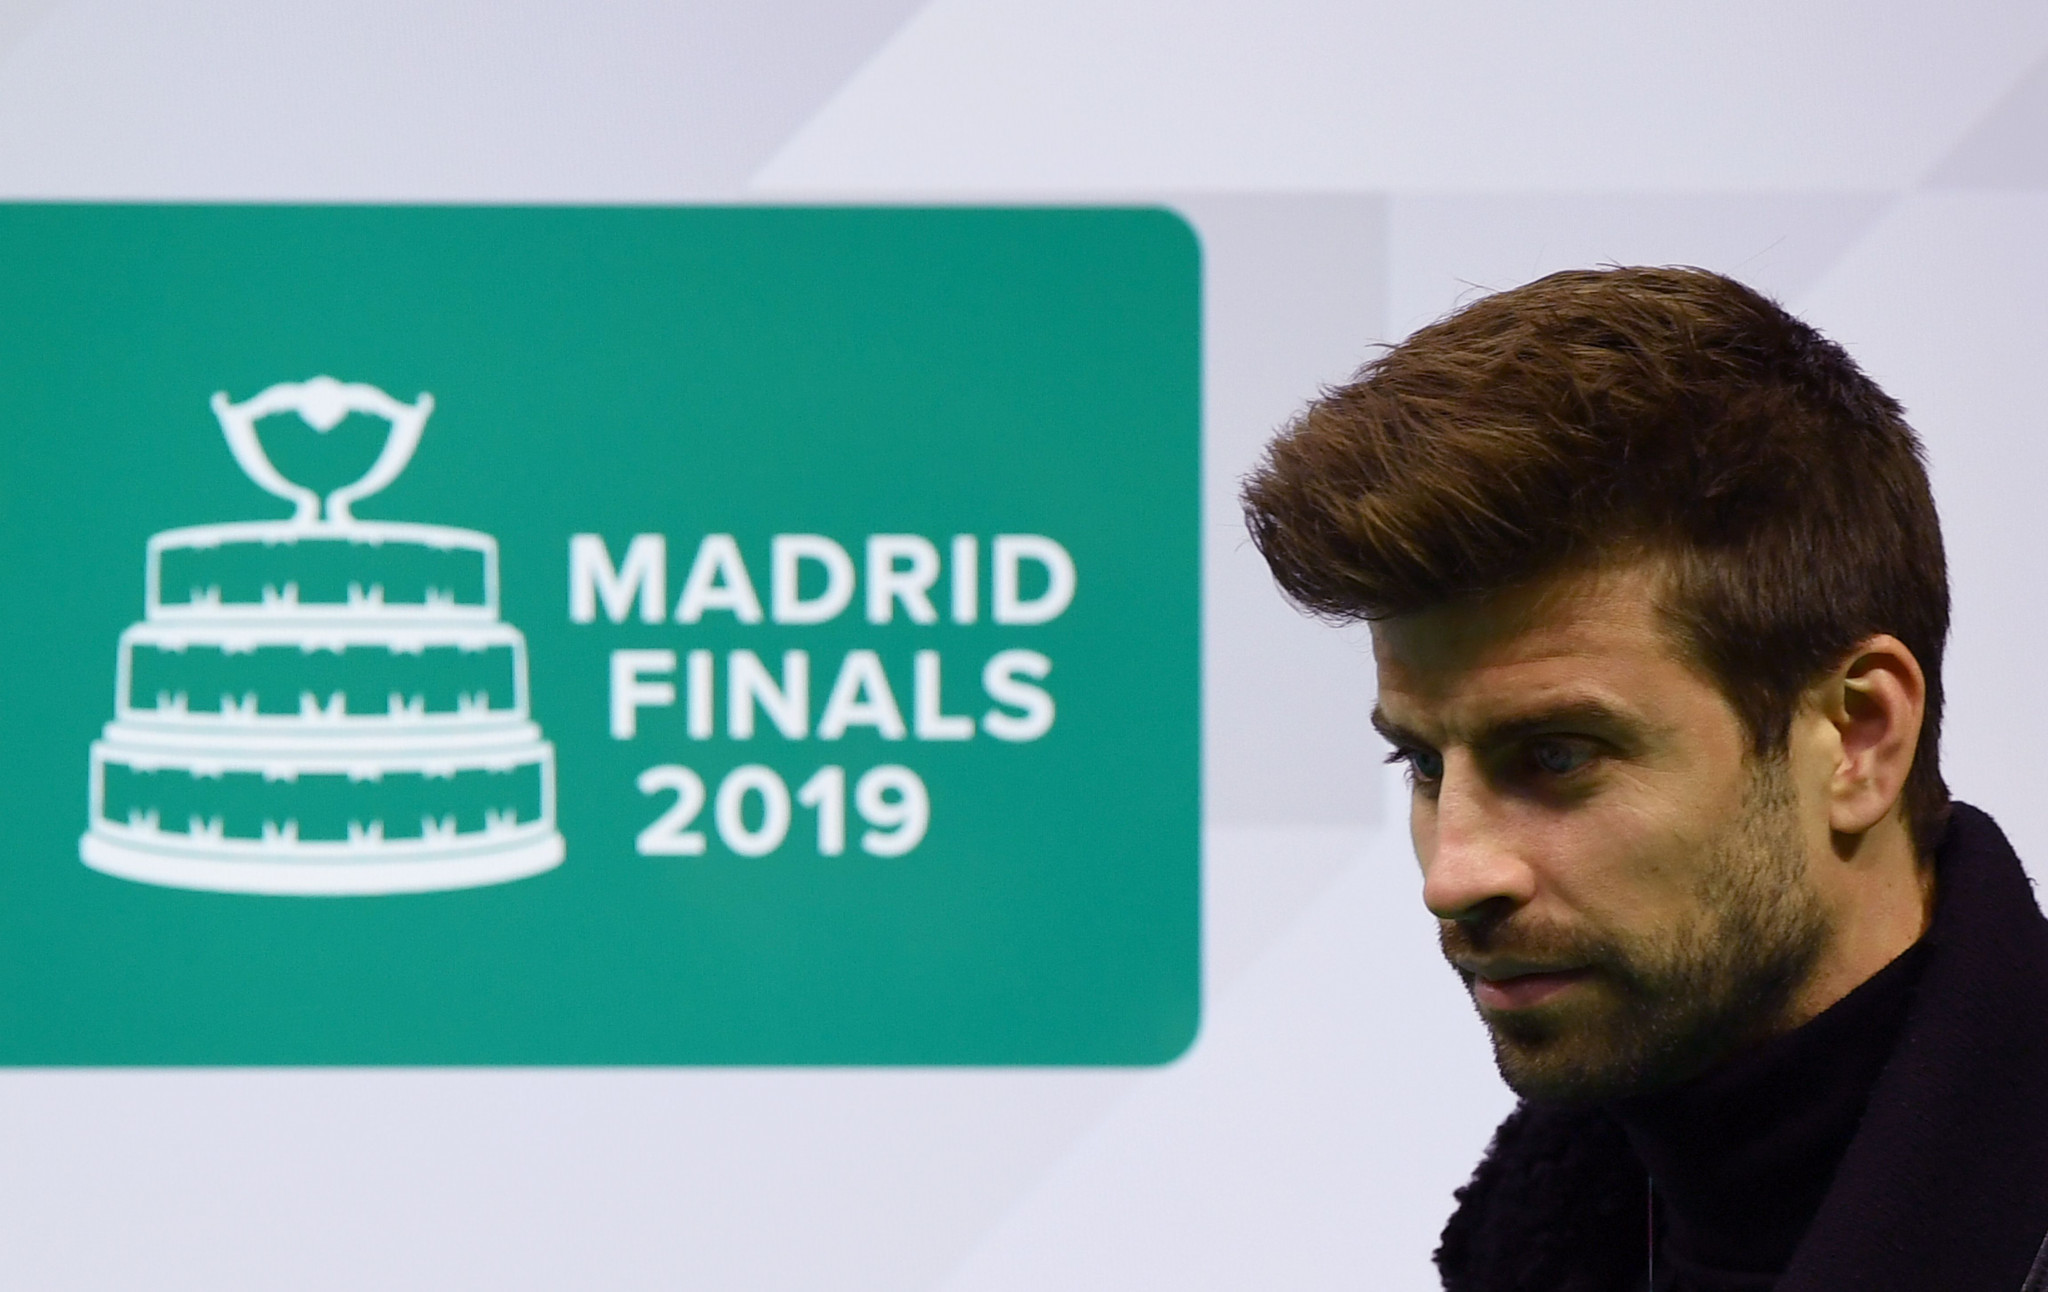 Football star Gerard Pique has been heavily involved in the revamped Davis Cup Finals ©Getty Images